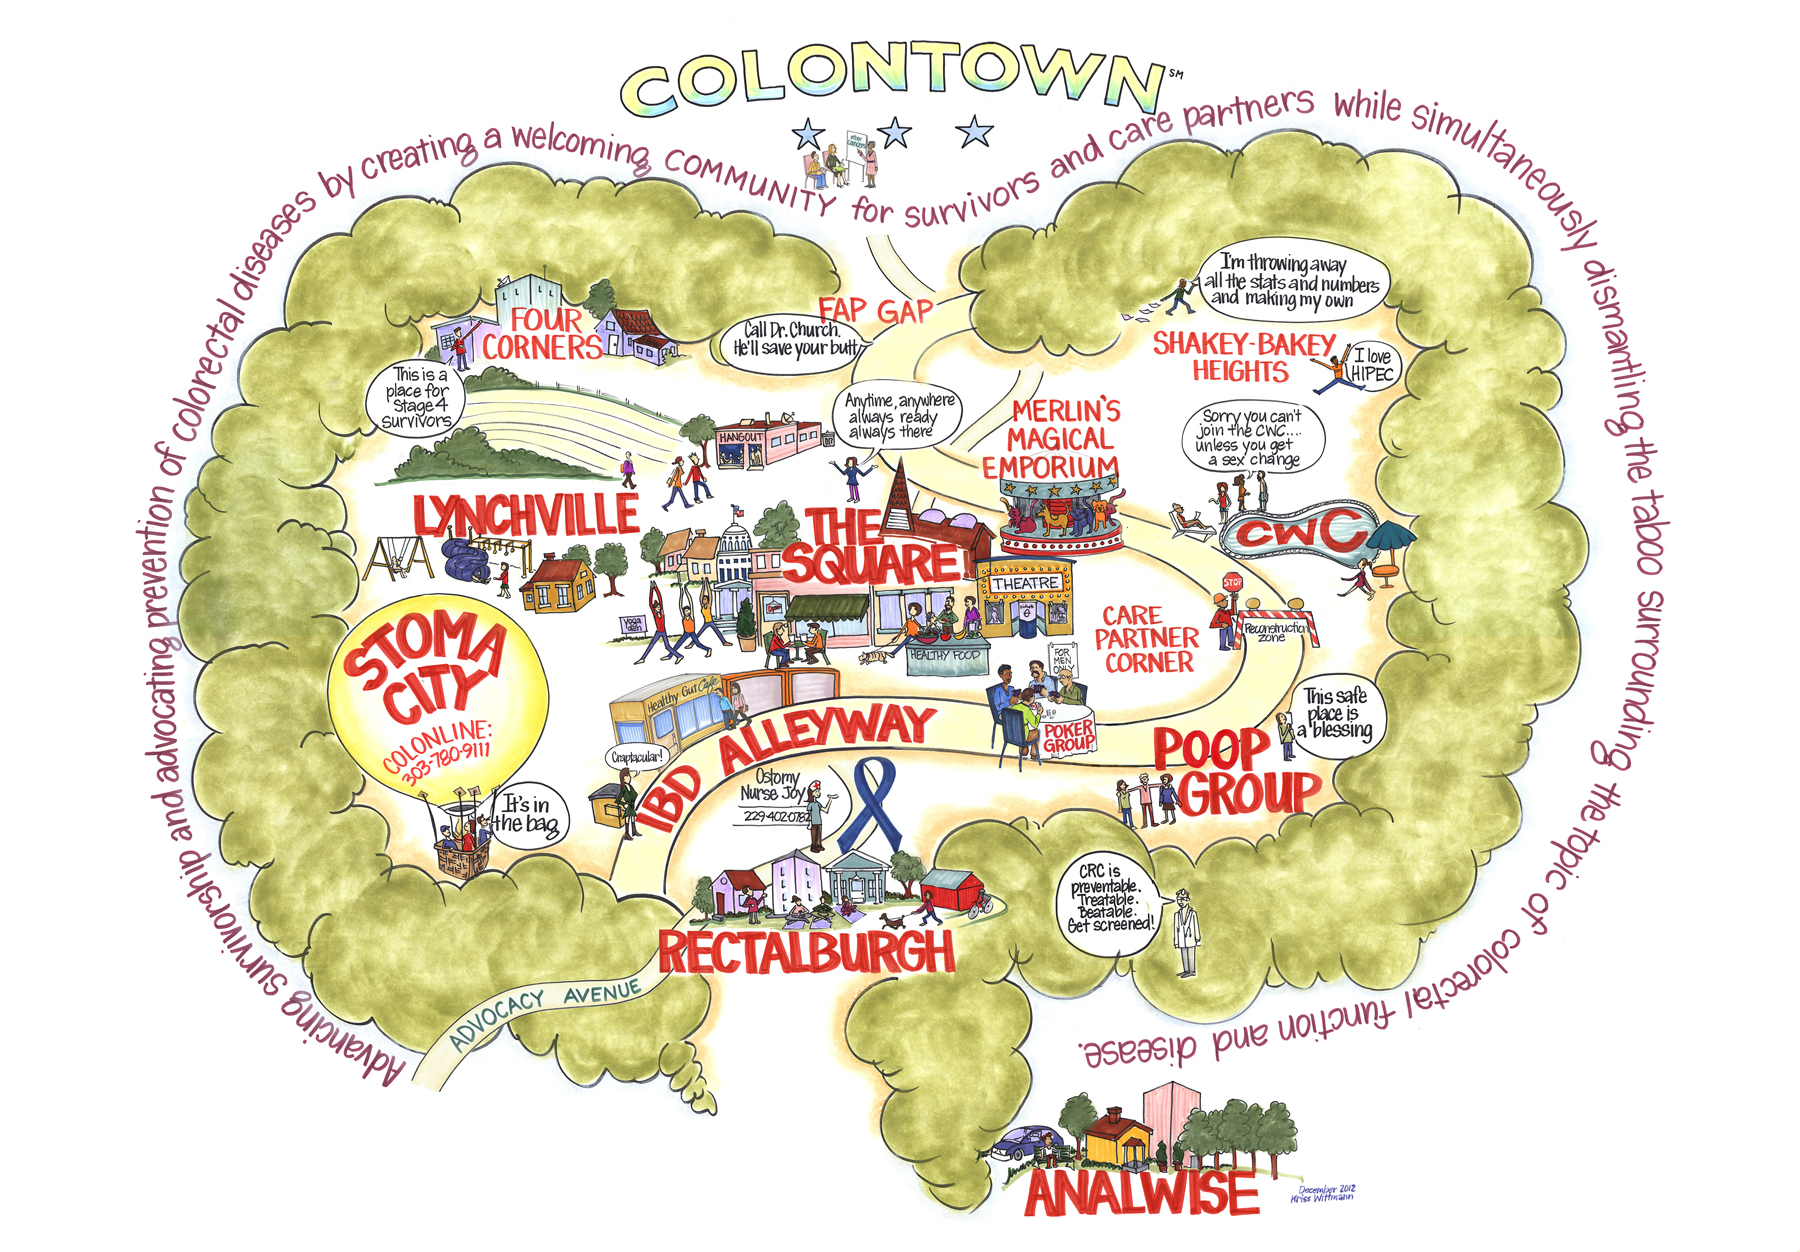 Colontown: Colon Cancer